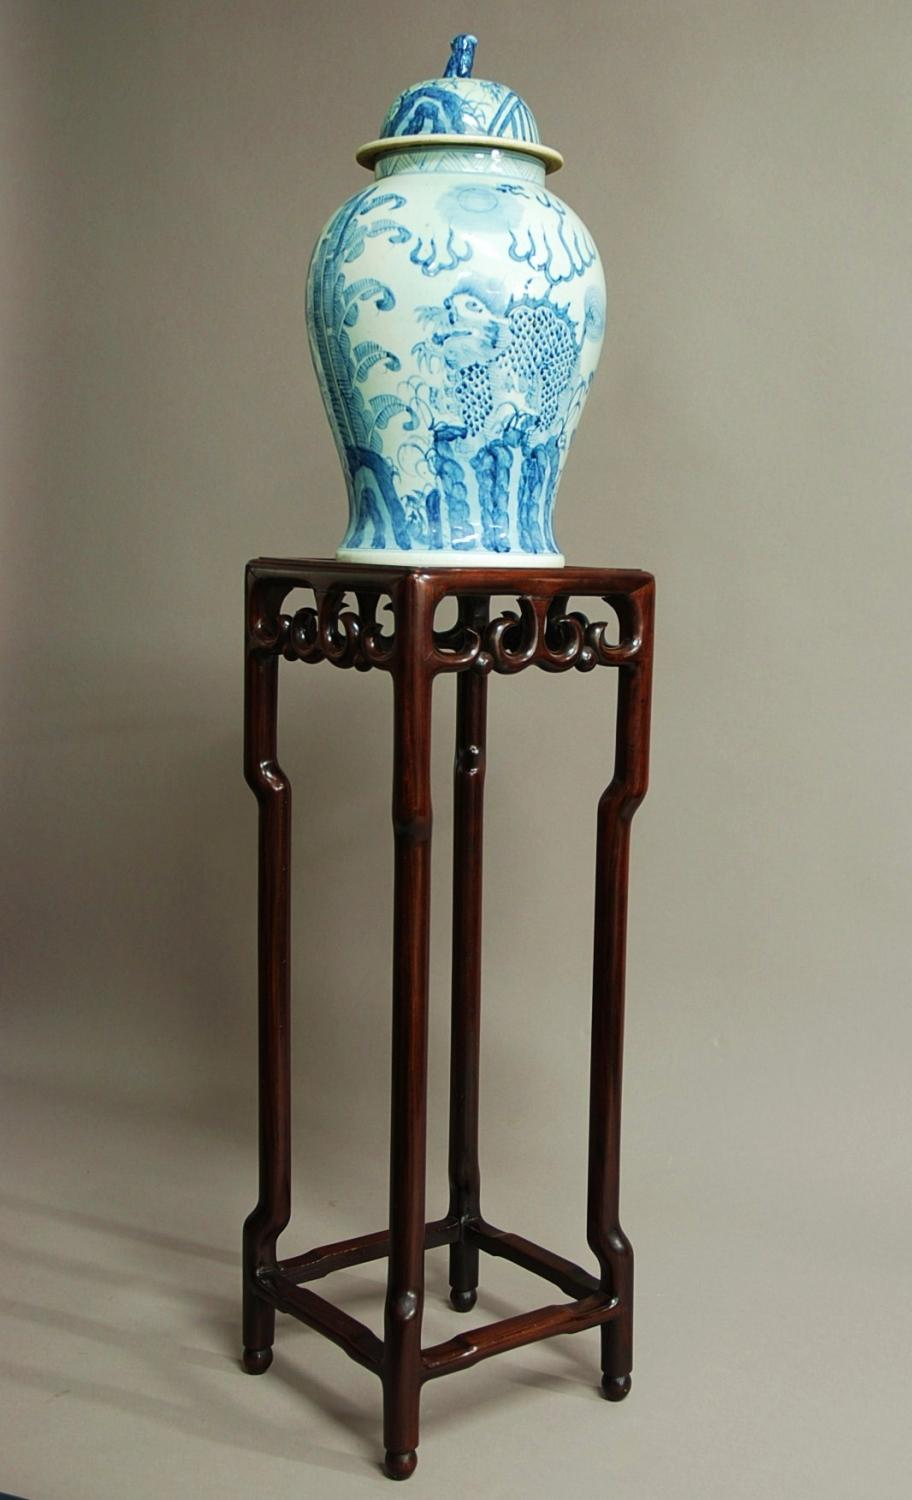 Late 19th century Chinese hardwood pot stand